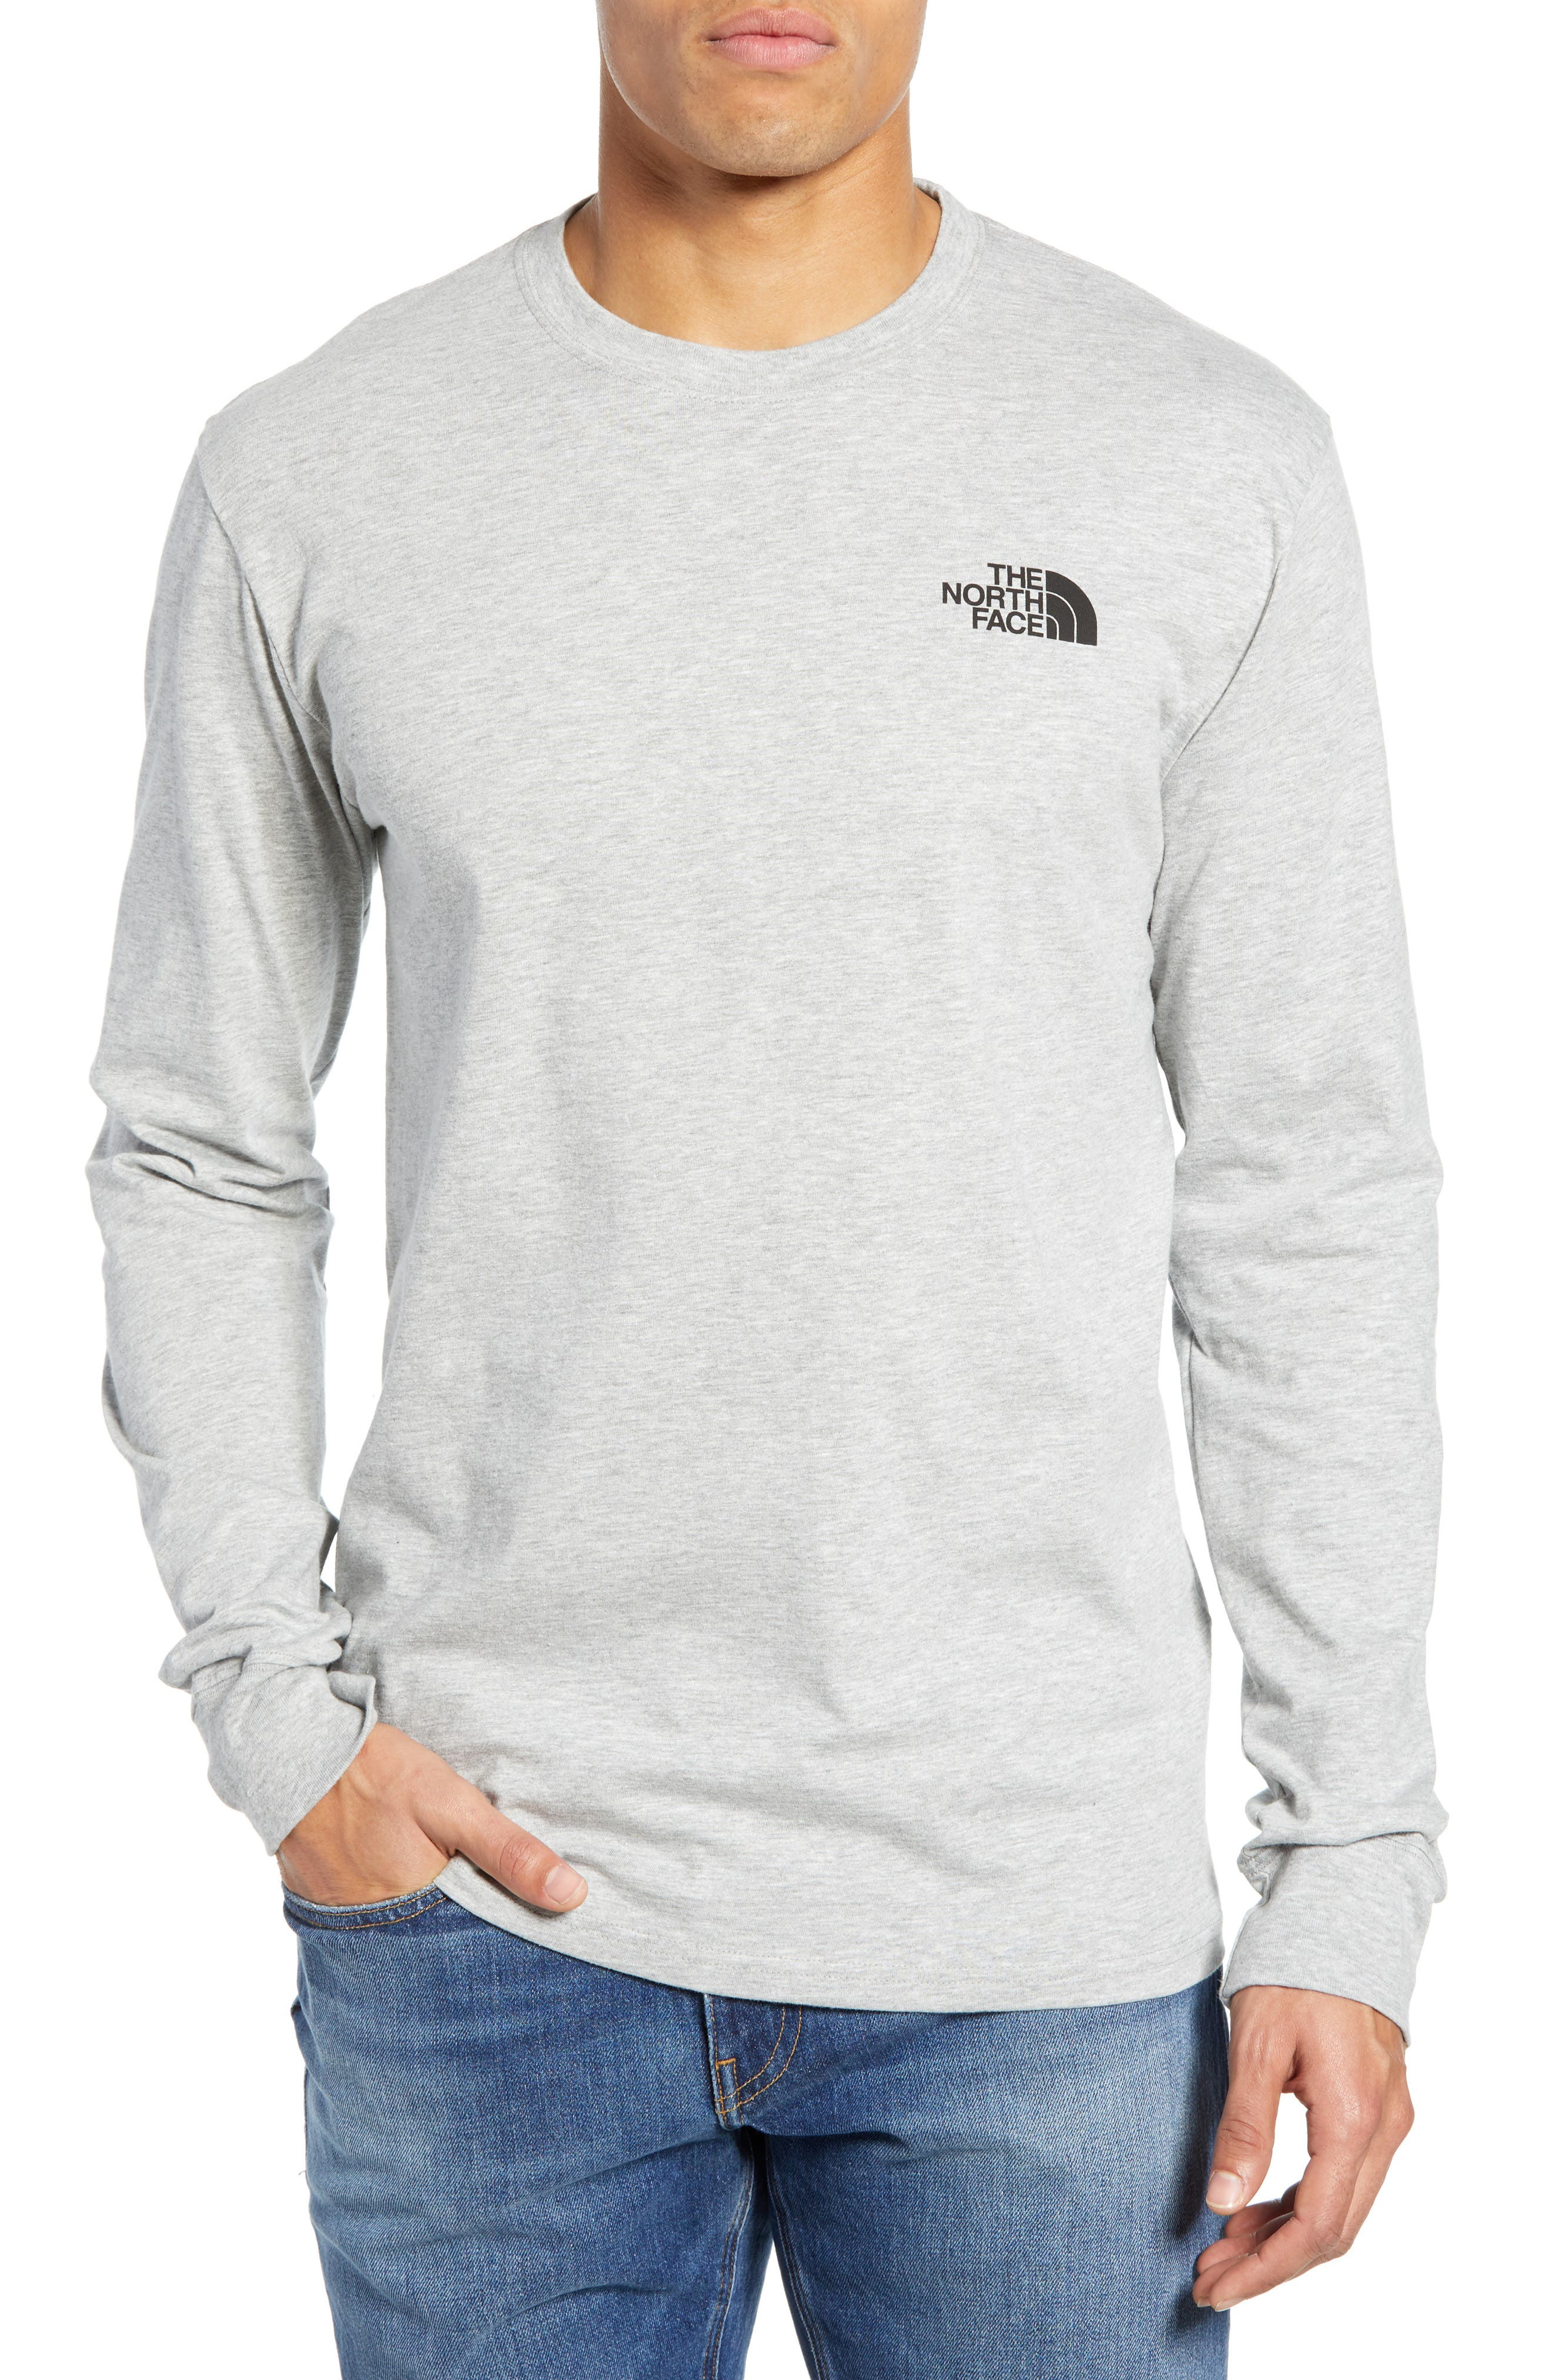 The North Face Red Box Long Sleeve T-Shirt, Grey